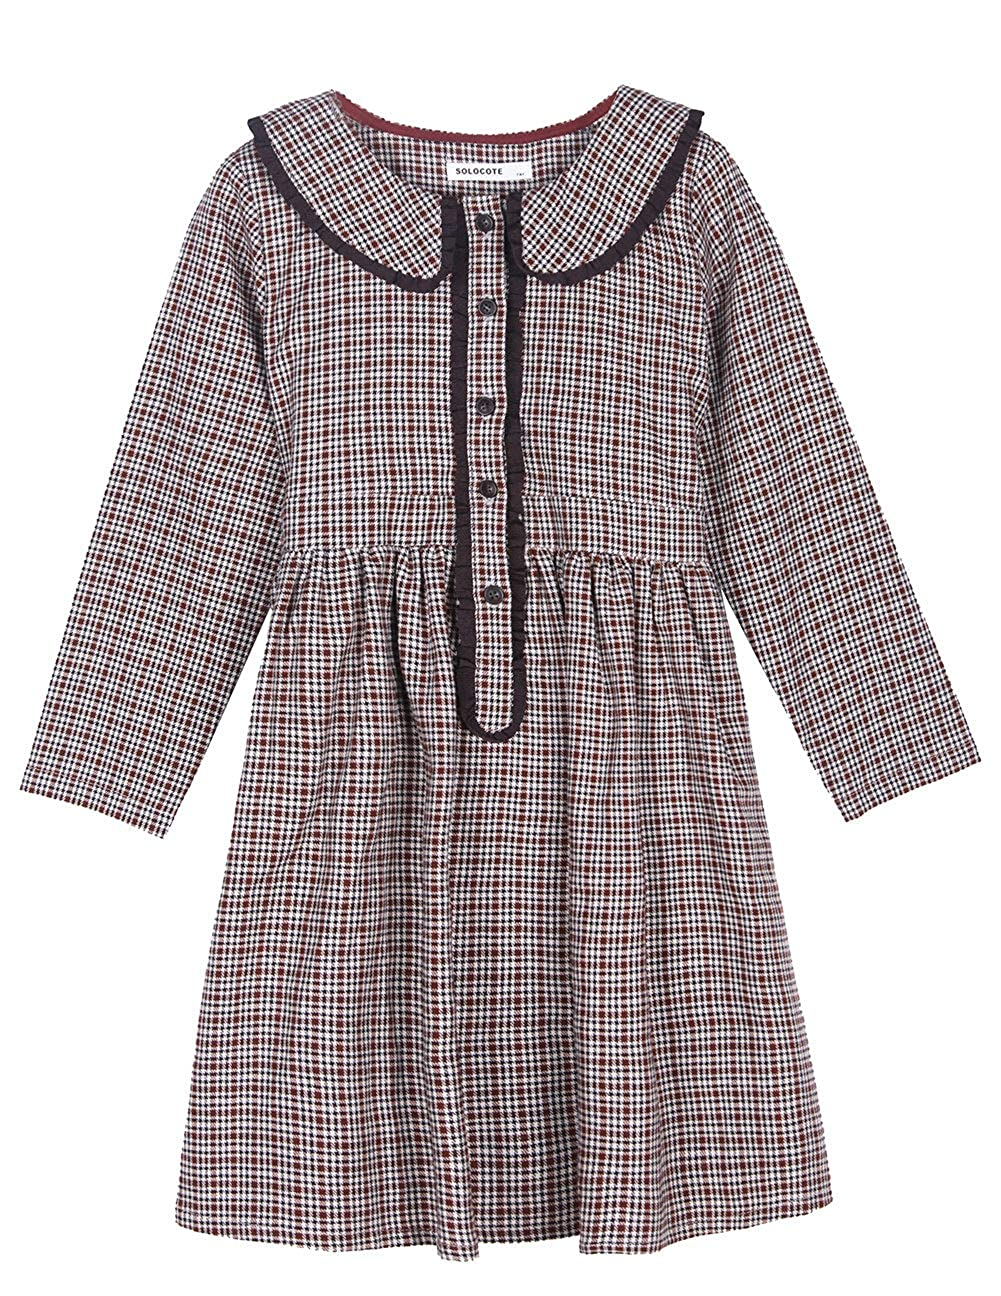 Vintage Style Children's Clothing: Girls, Boys, Baby, Toddler SOLOCOTE Girls Plaid Dress Grey Spring Long Sleeve Dresses Peter Pan Collar 3-14Y $25.99 AT vintagedancer.com